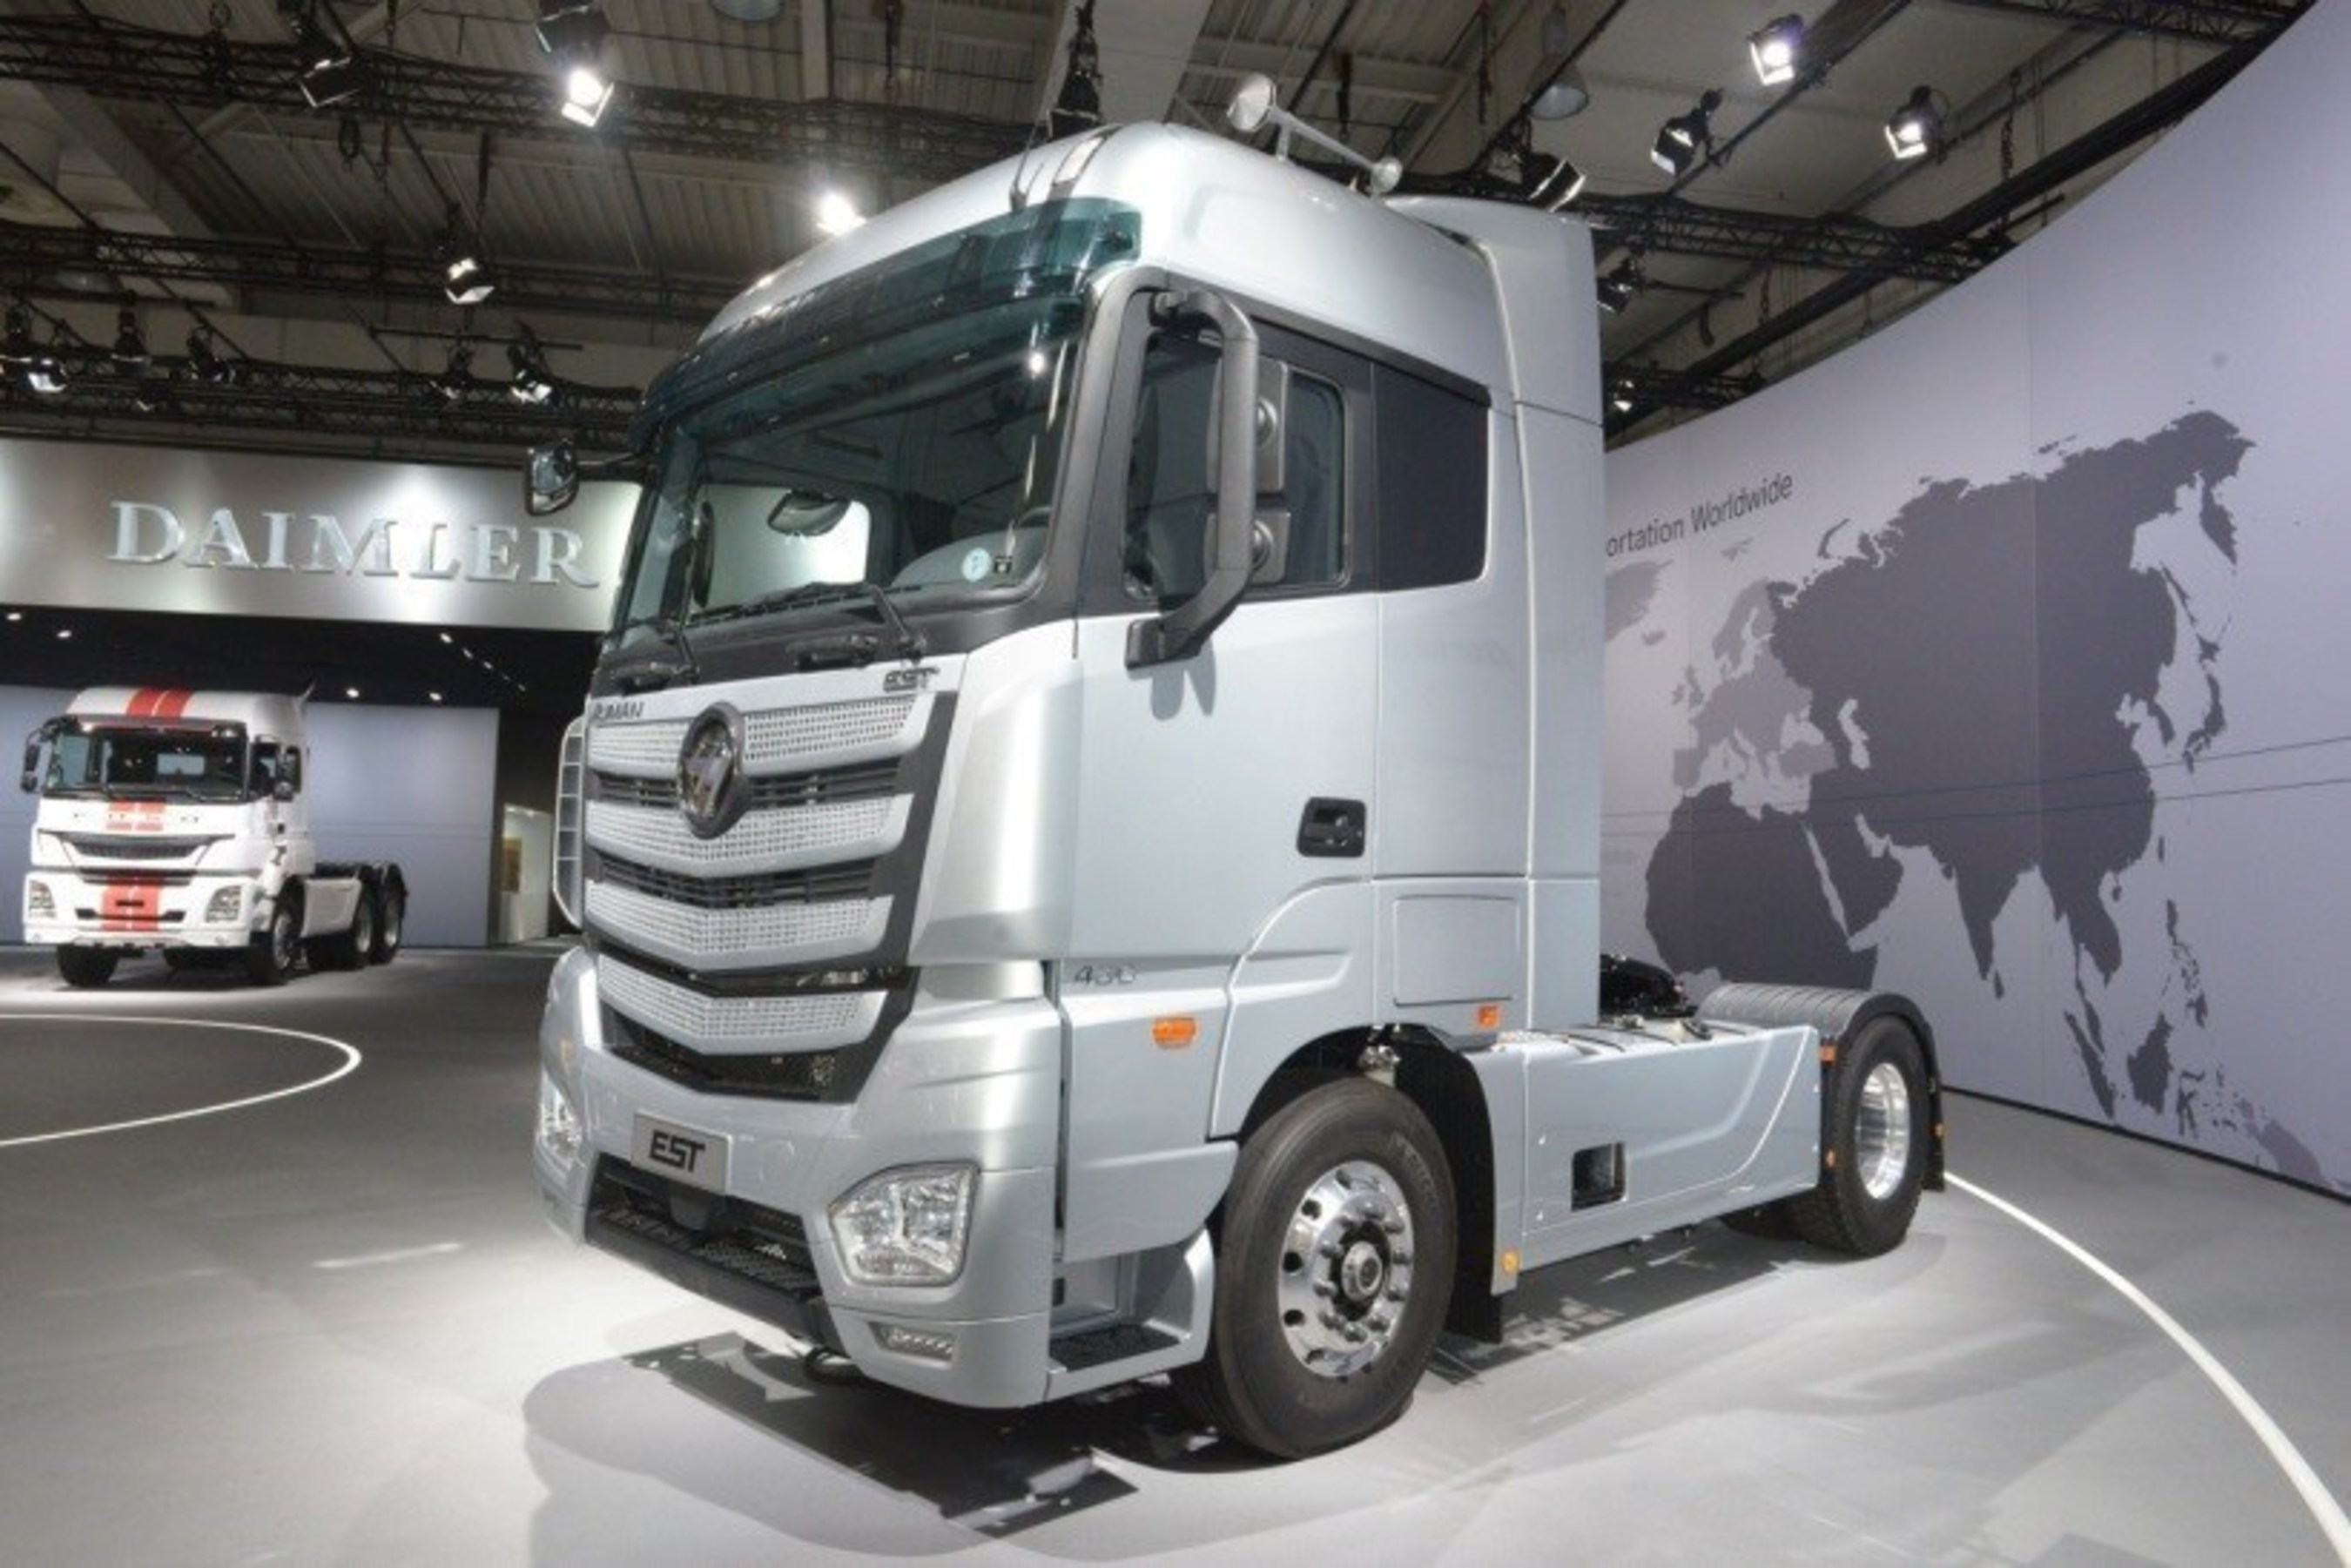 Foton Auman EST Super Truck Making Debut on IAA Commercial Vehicles in Hannover